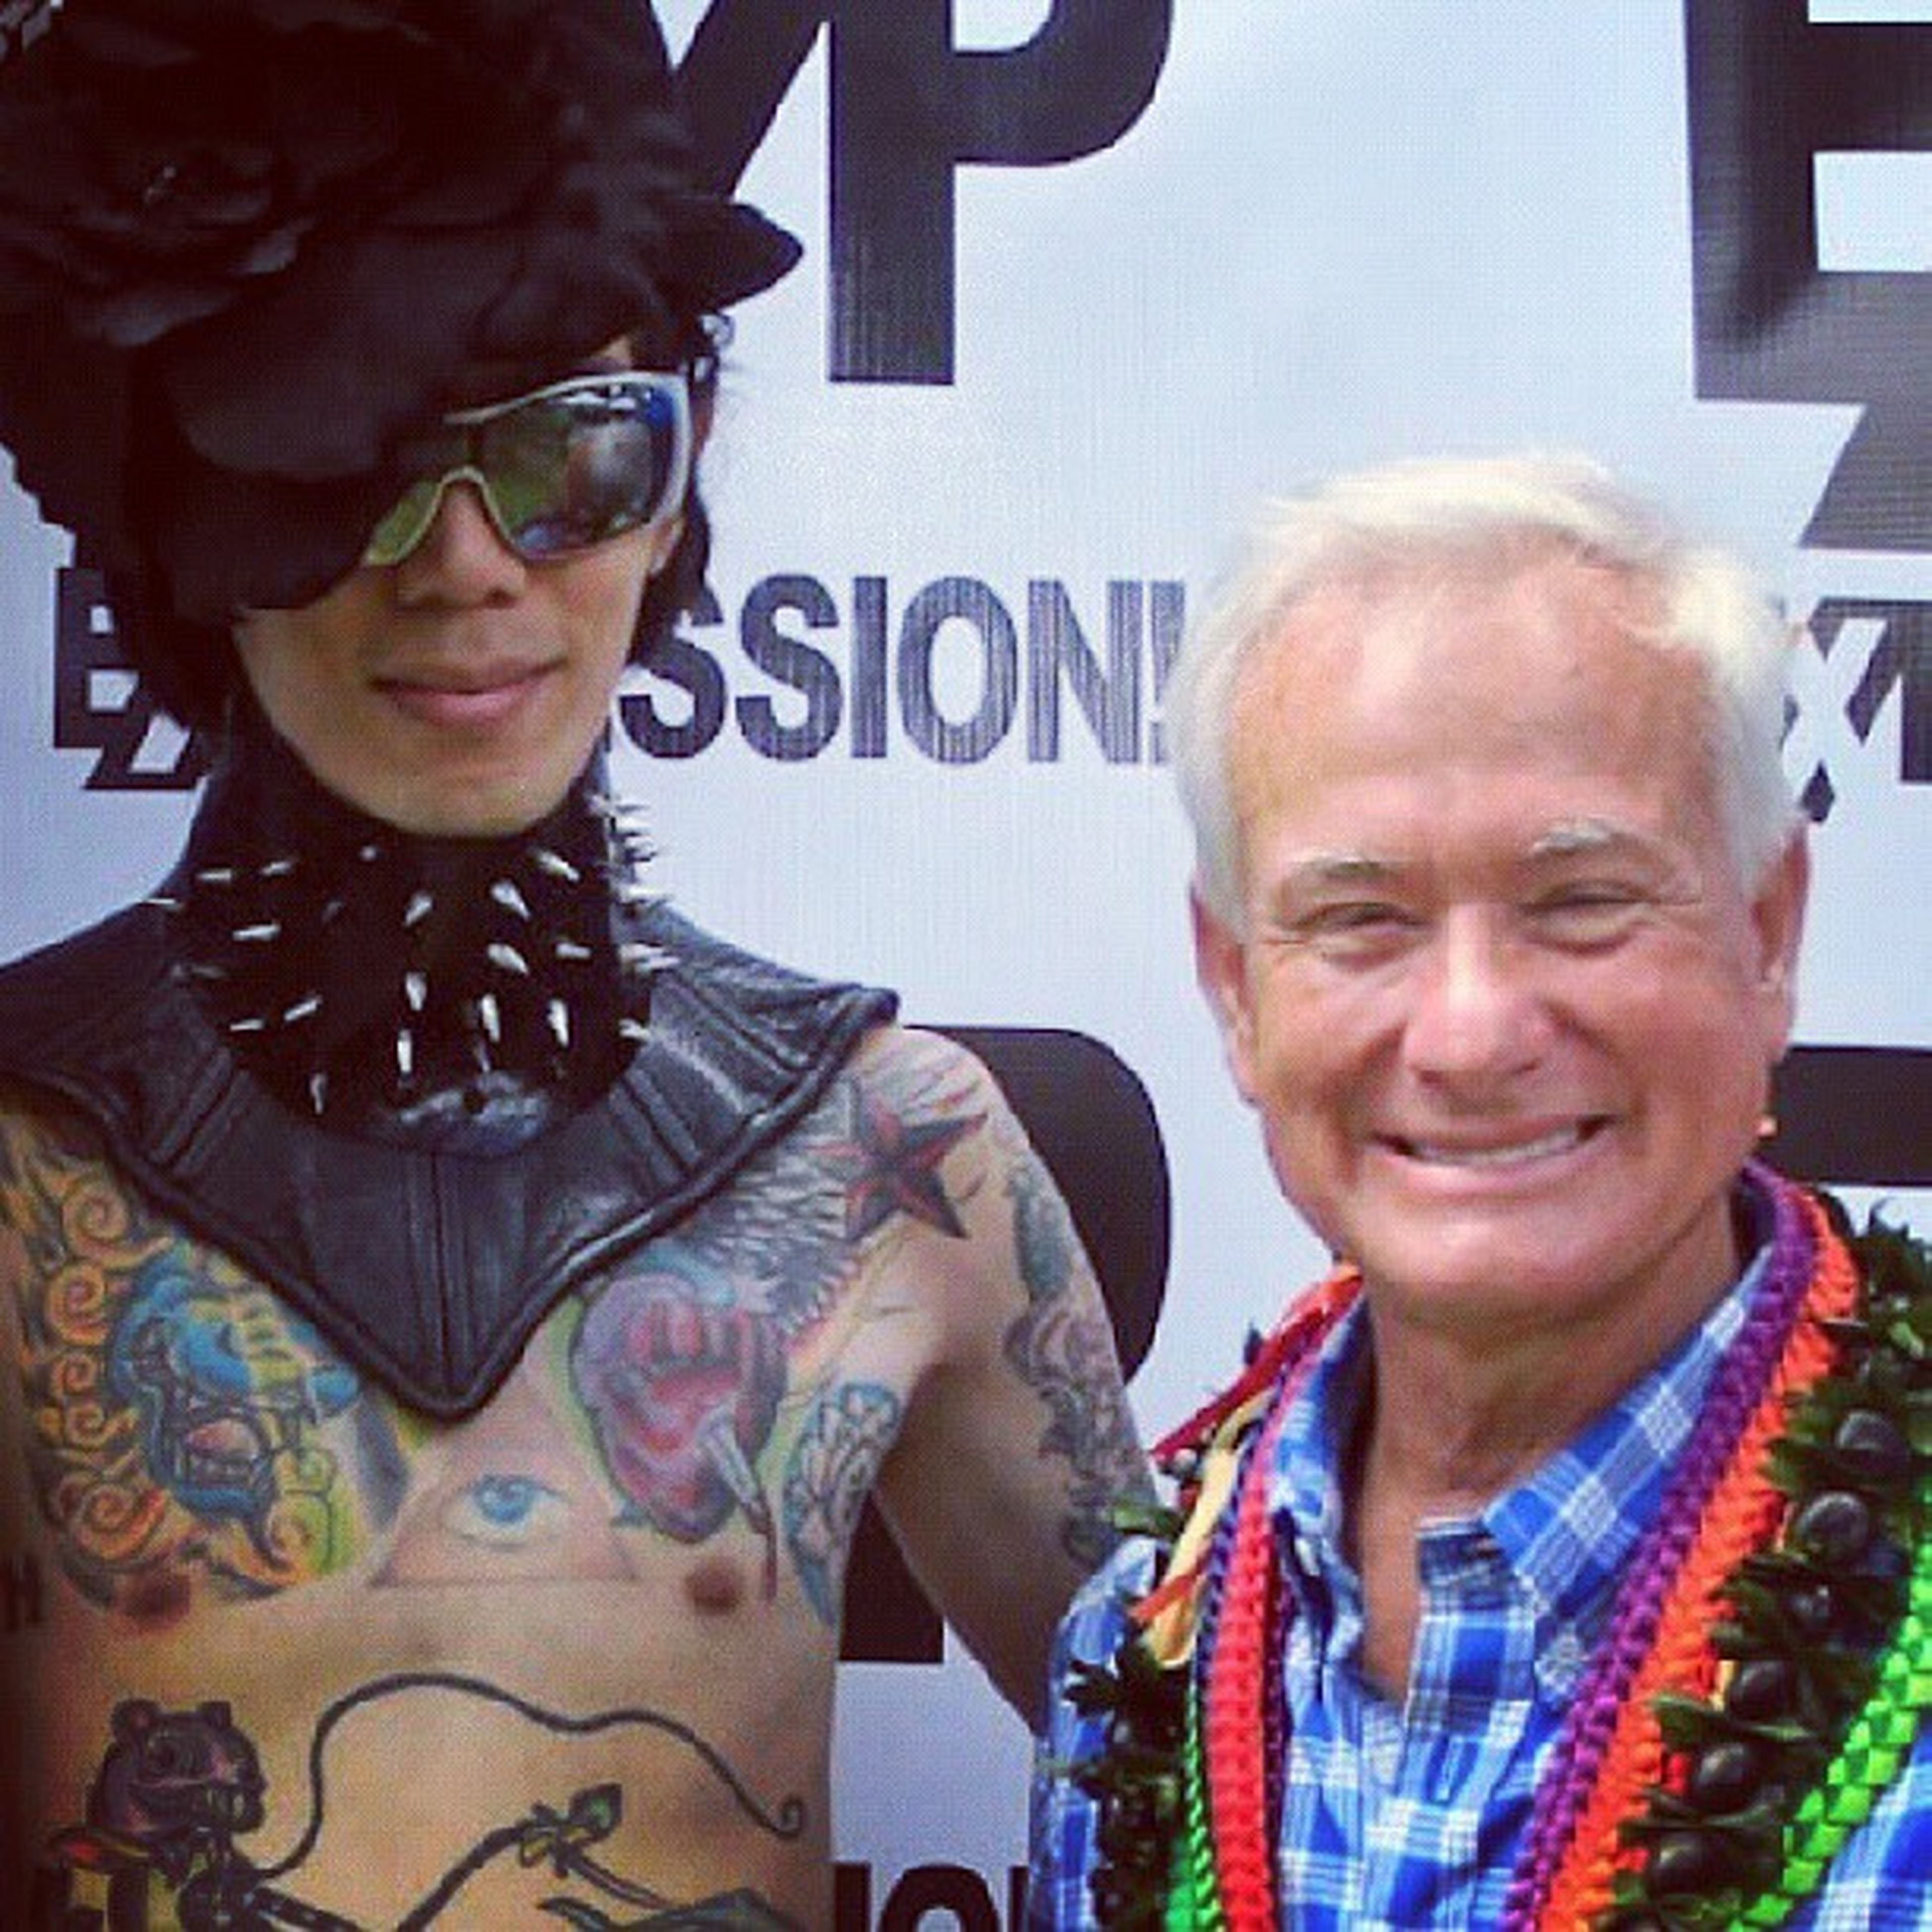 It was great to see so many people that day check out expression808.com to see your photos from pride day part one, part two should be up shortly.;) HonoluluMayor Expression_magazine Prideday Melting nobreaksandlovingit prancersizing newfriends